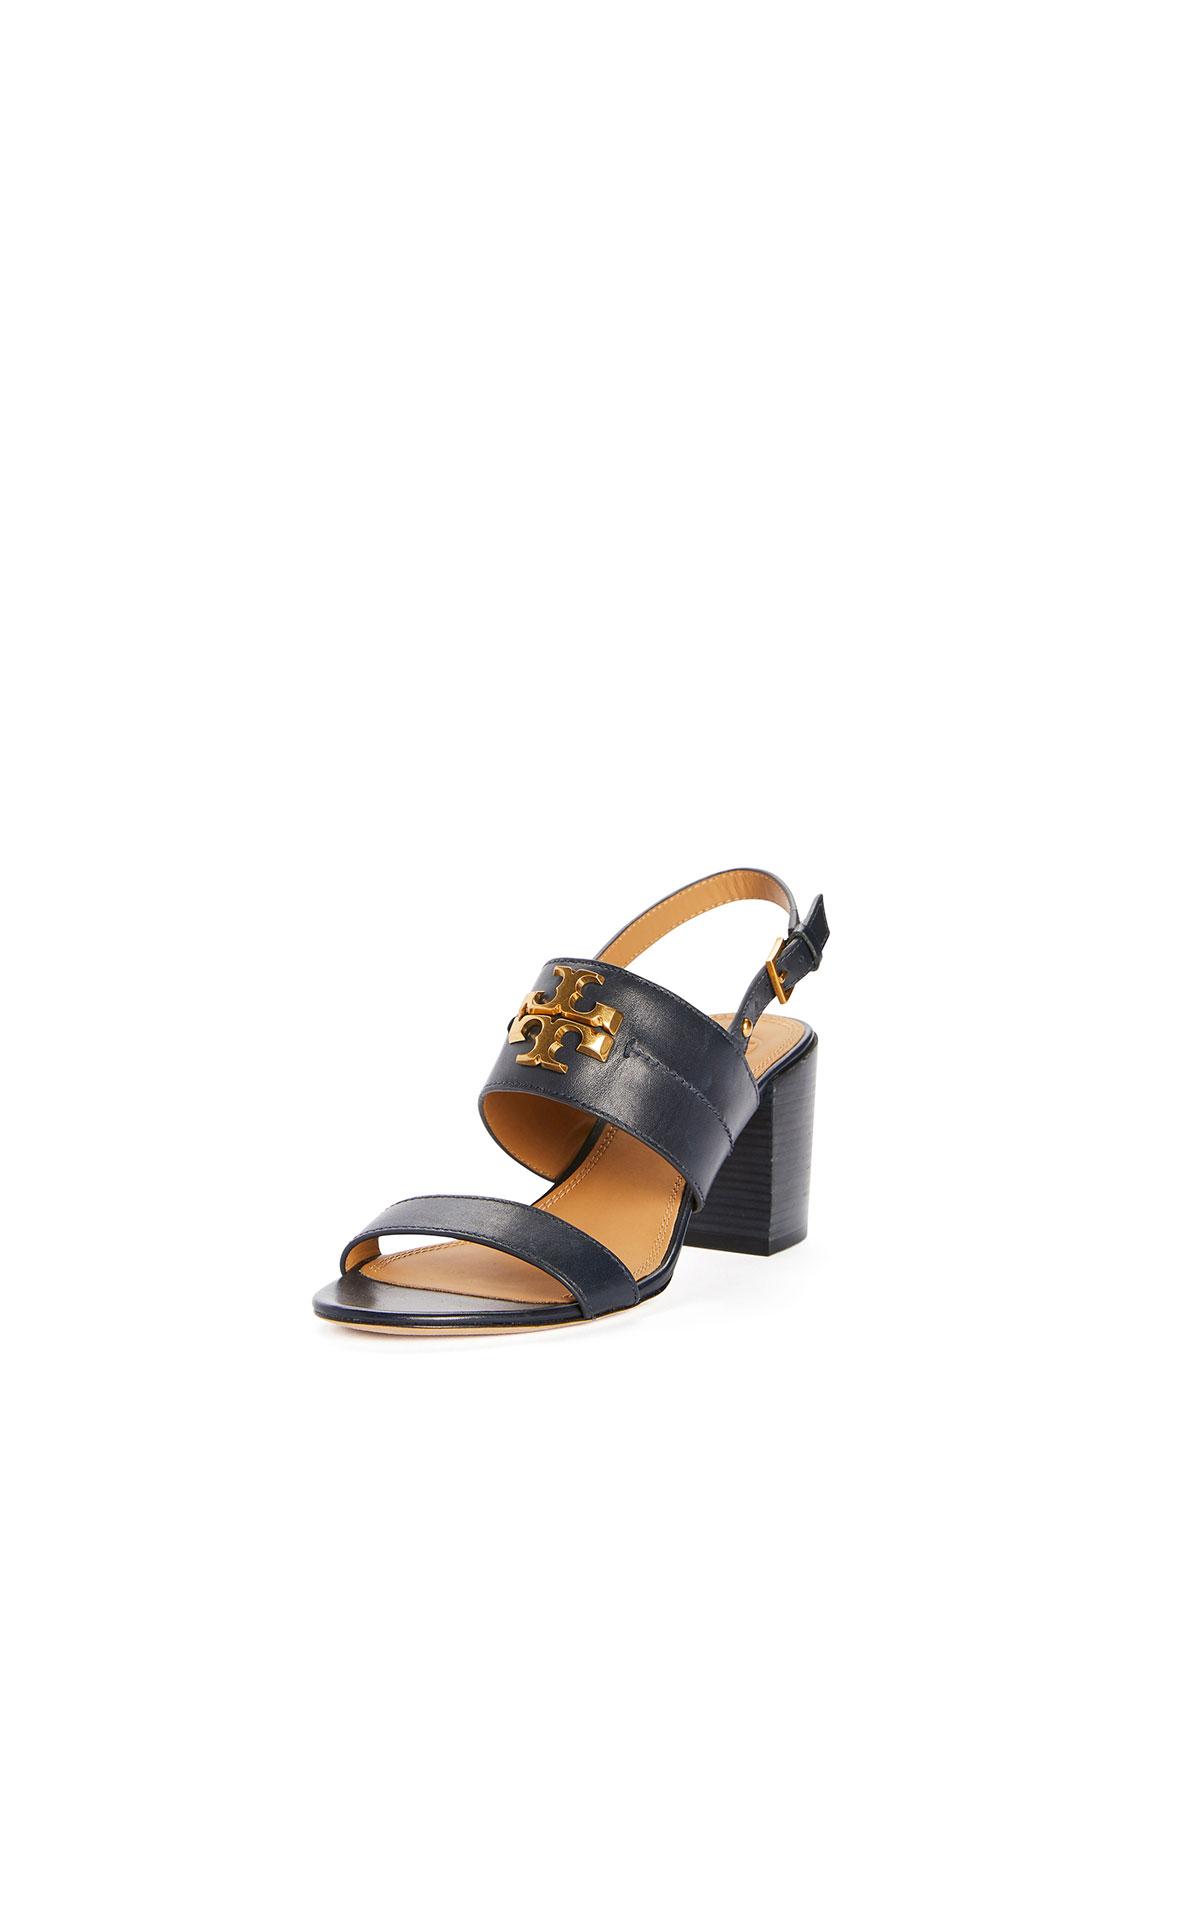 Tory Burch Everly 65mm sandal from Bicester Village